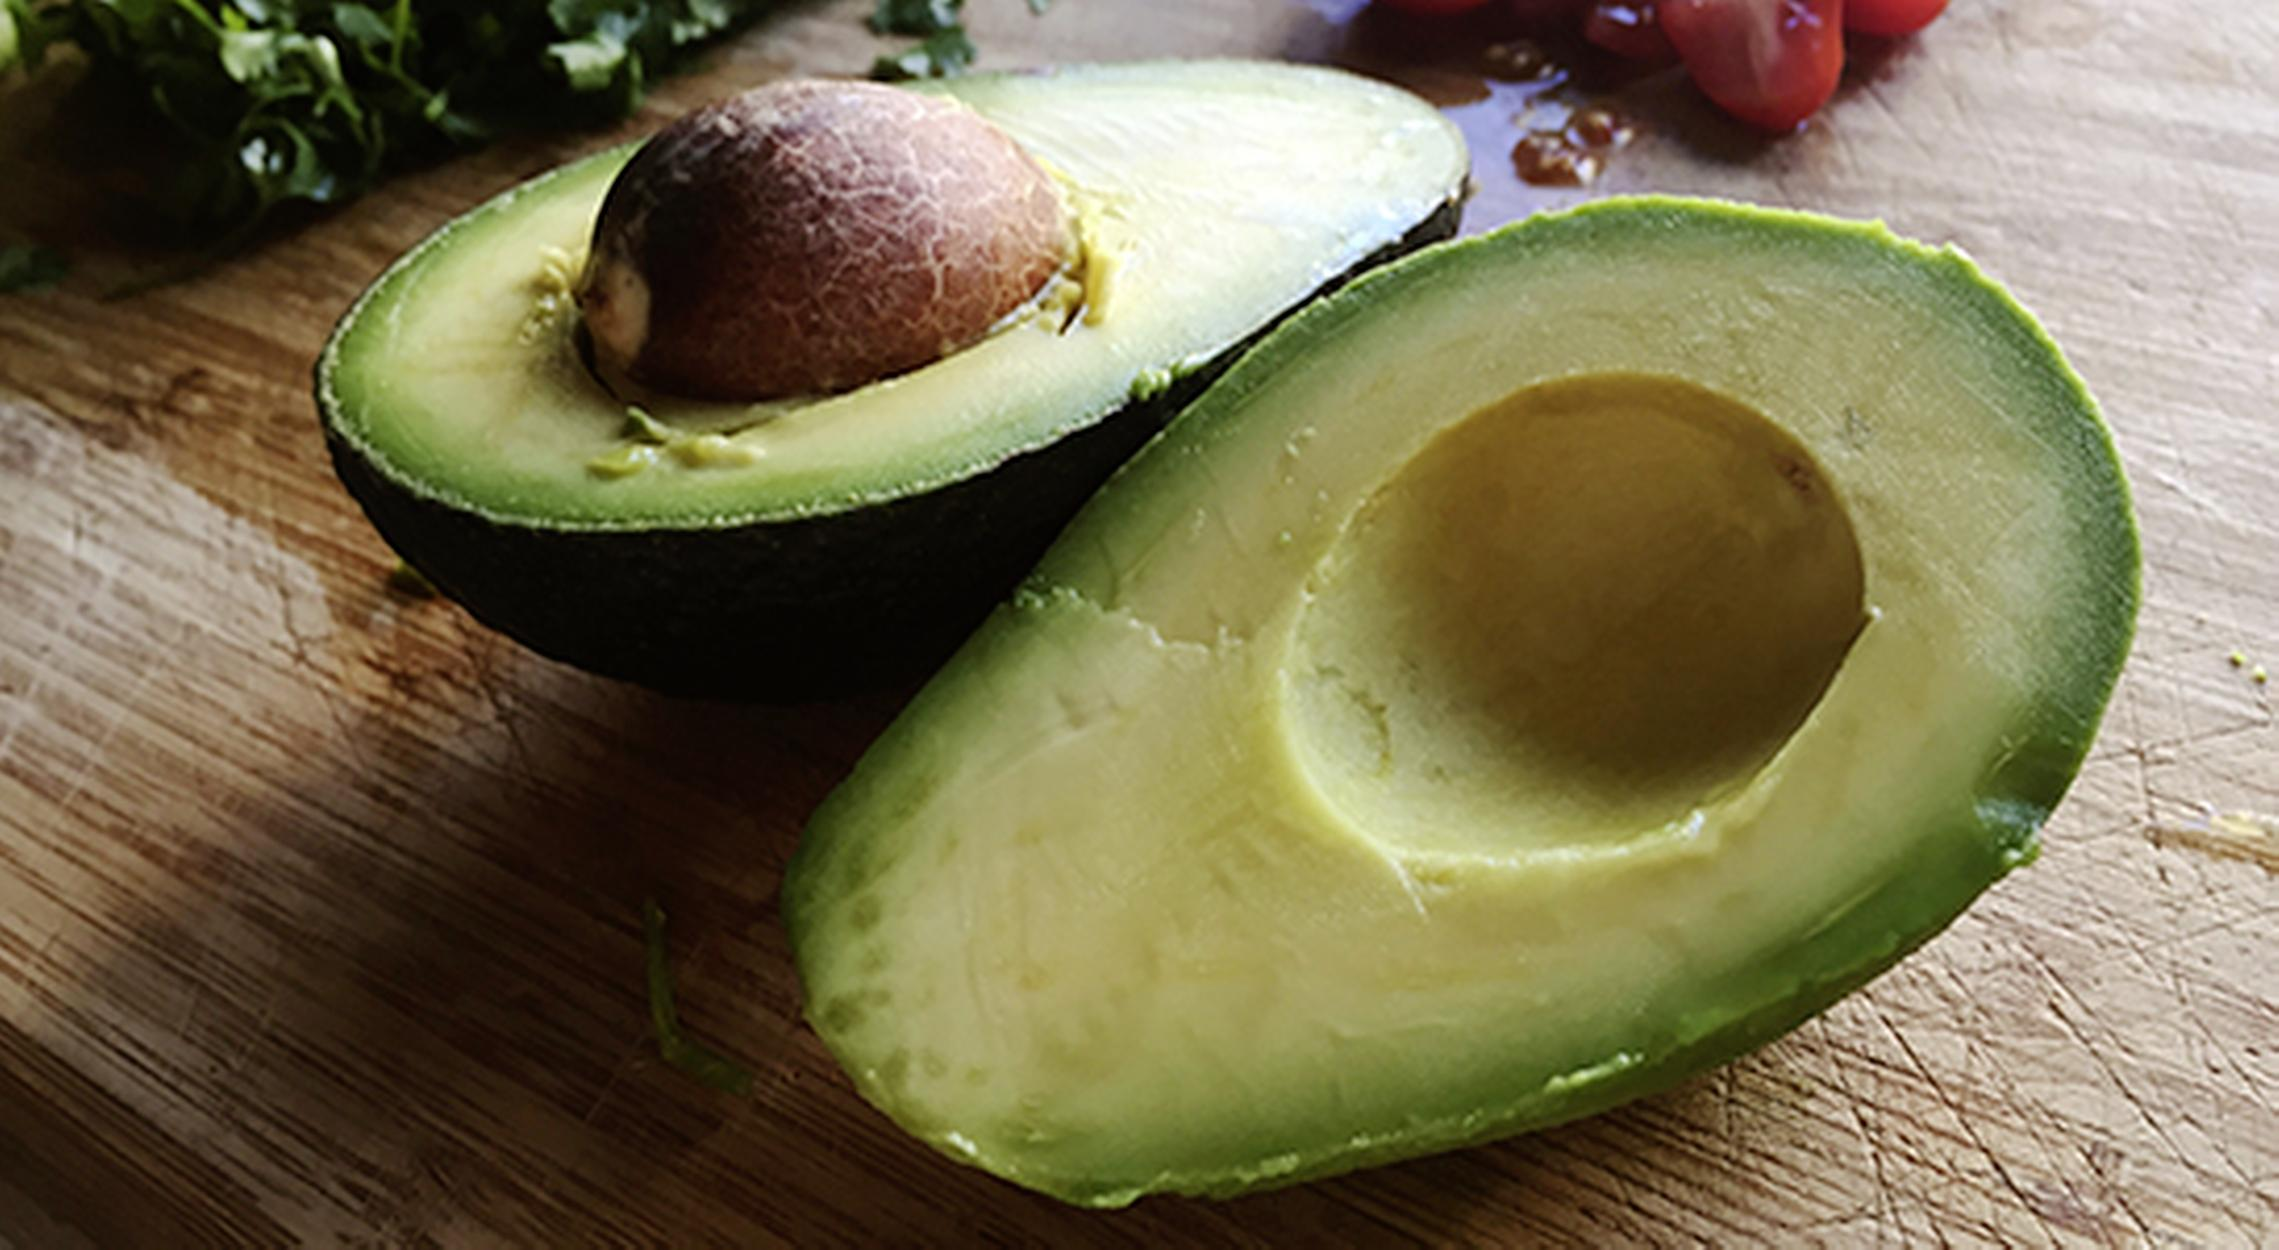 Avocado: godenspijs of 'bloeddiamant'